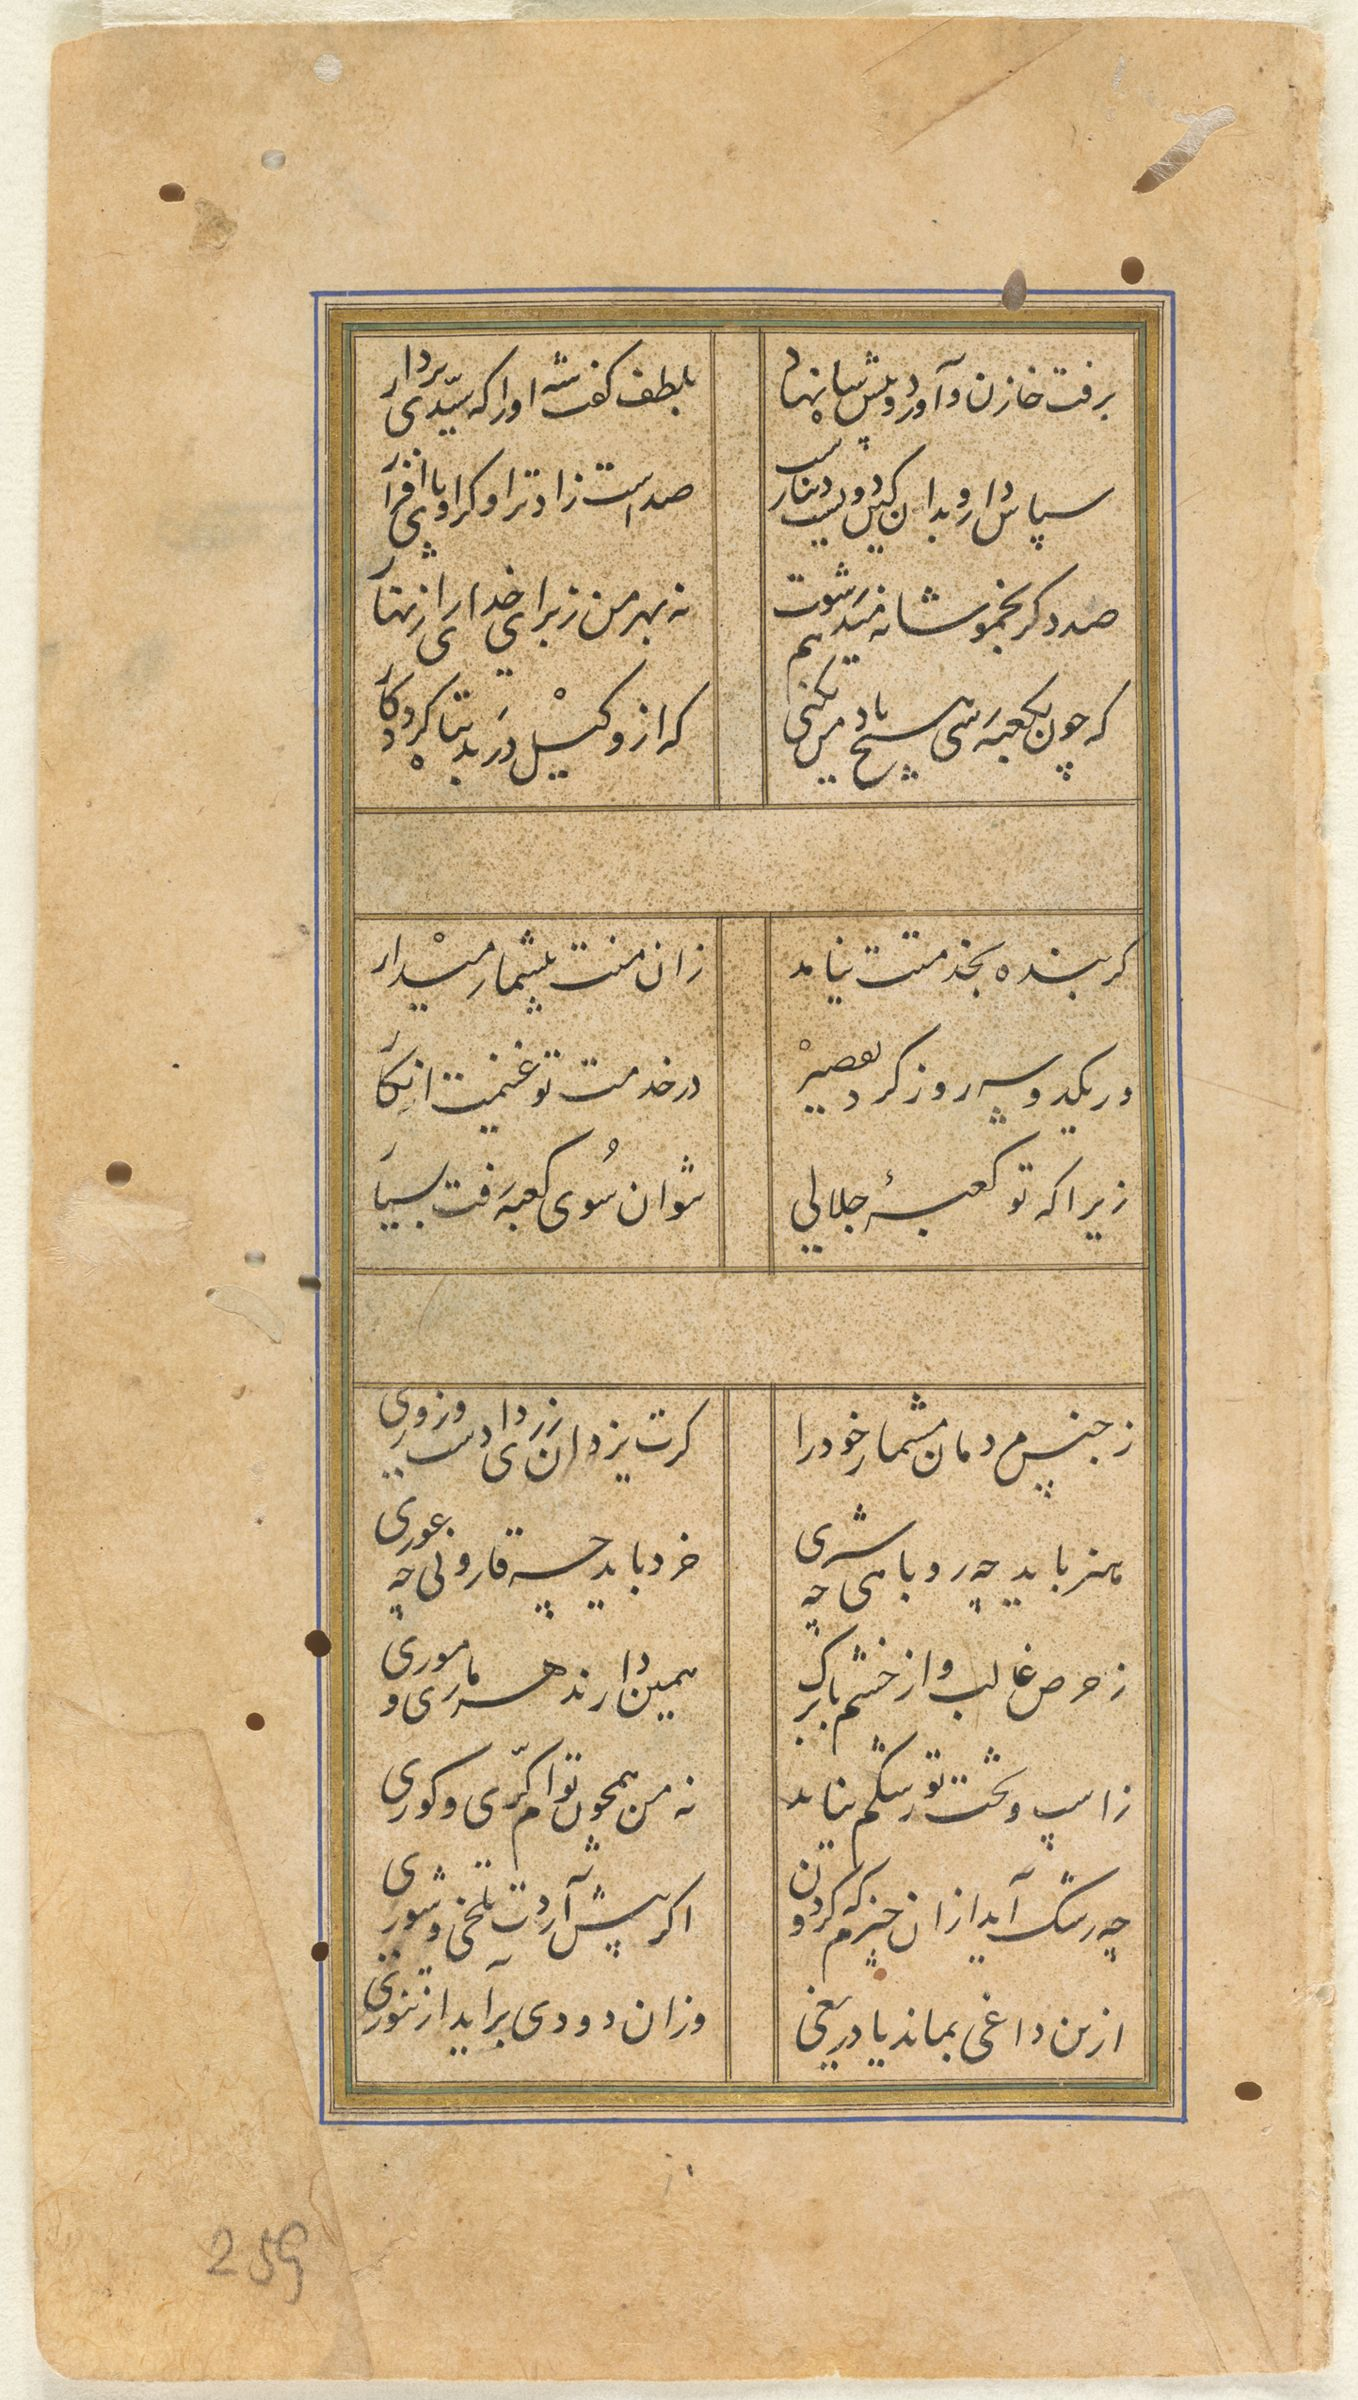 Folio 259 (Text, Recto And Verso), From A Manuscript Of The Divan Of Anvari